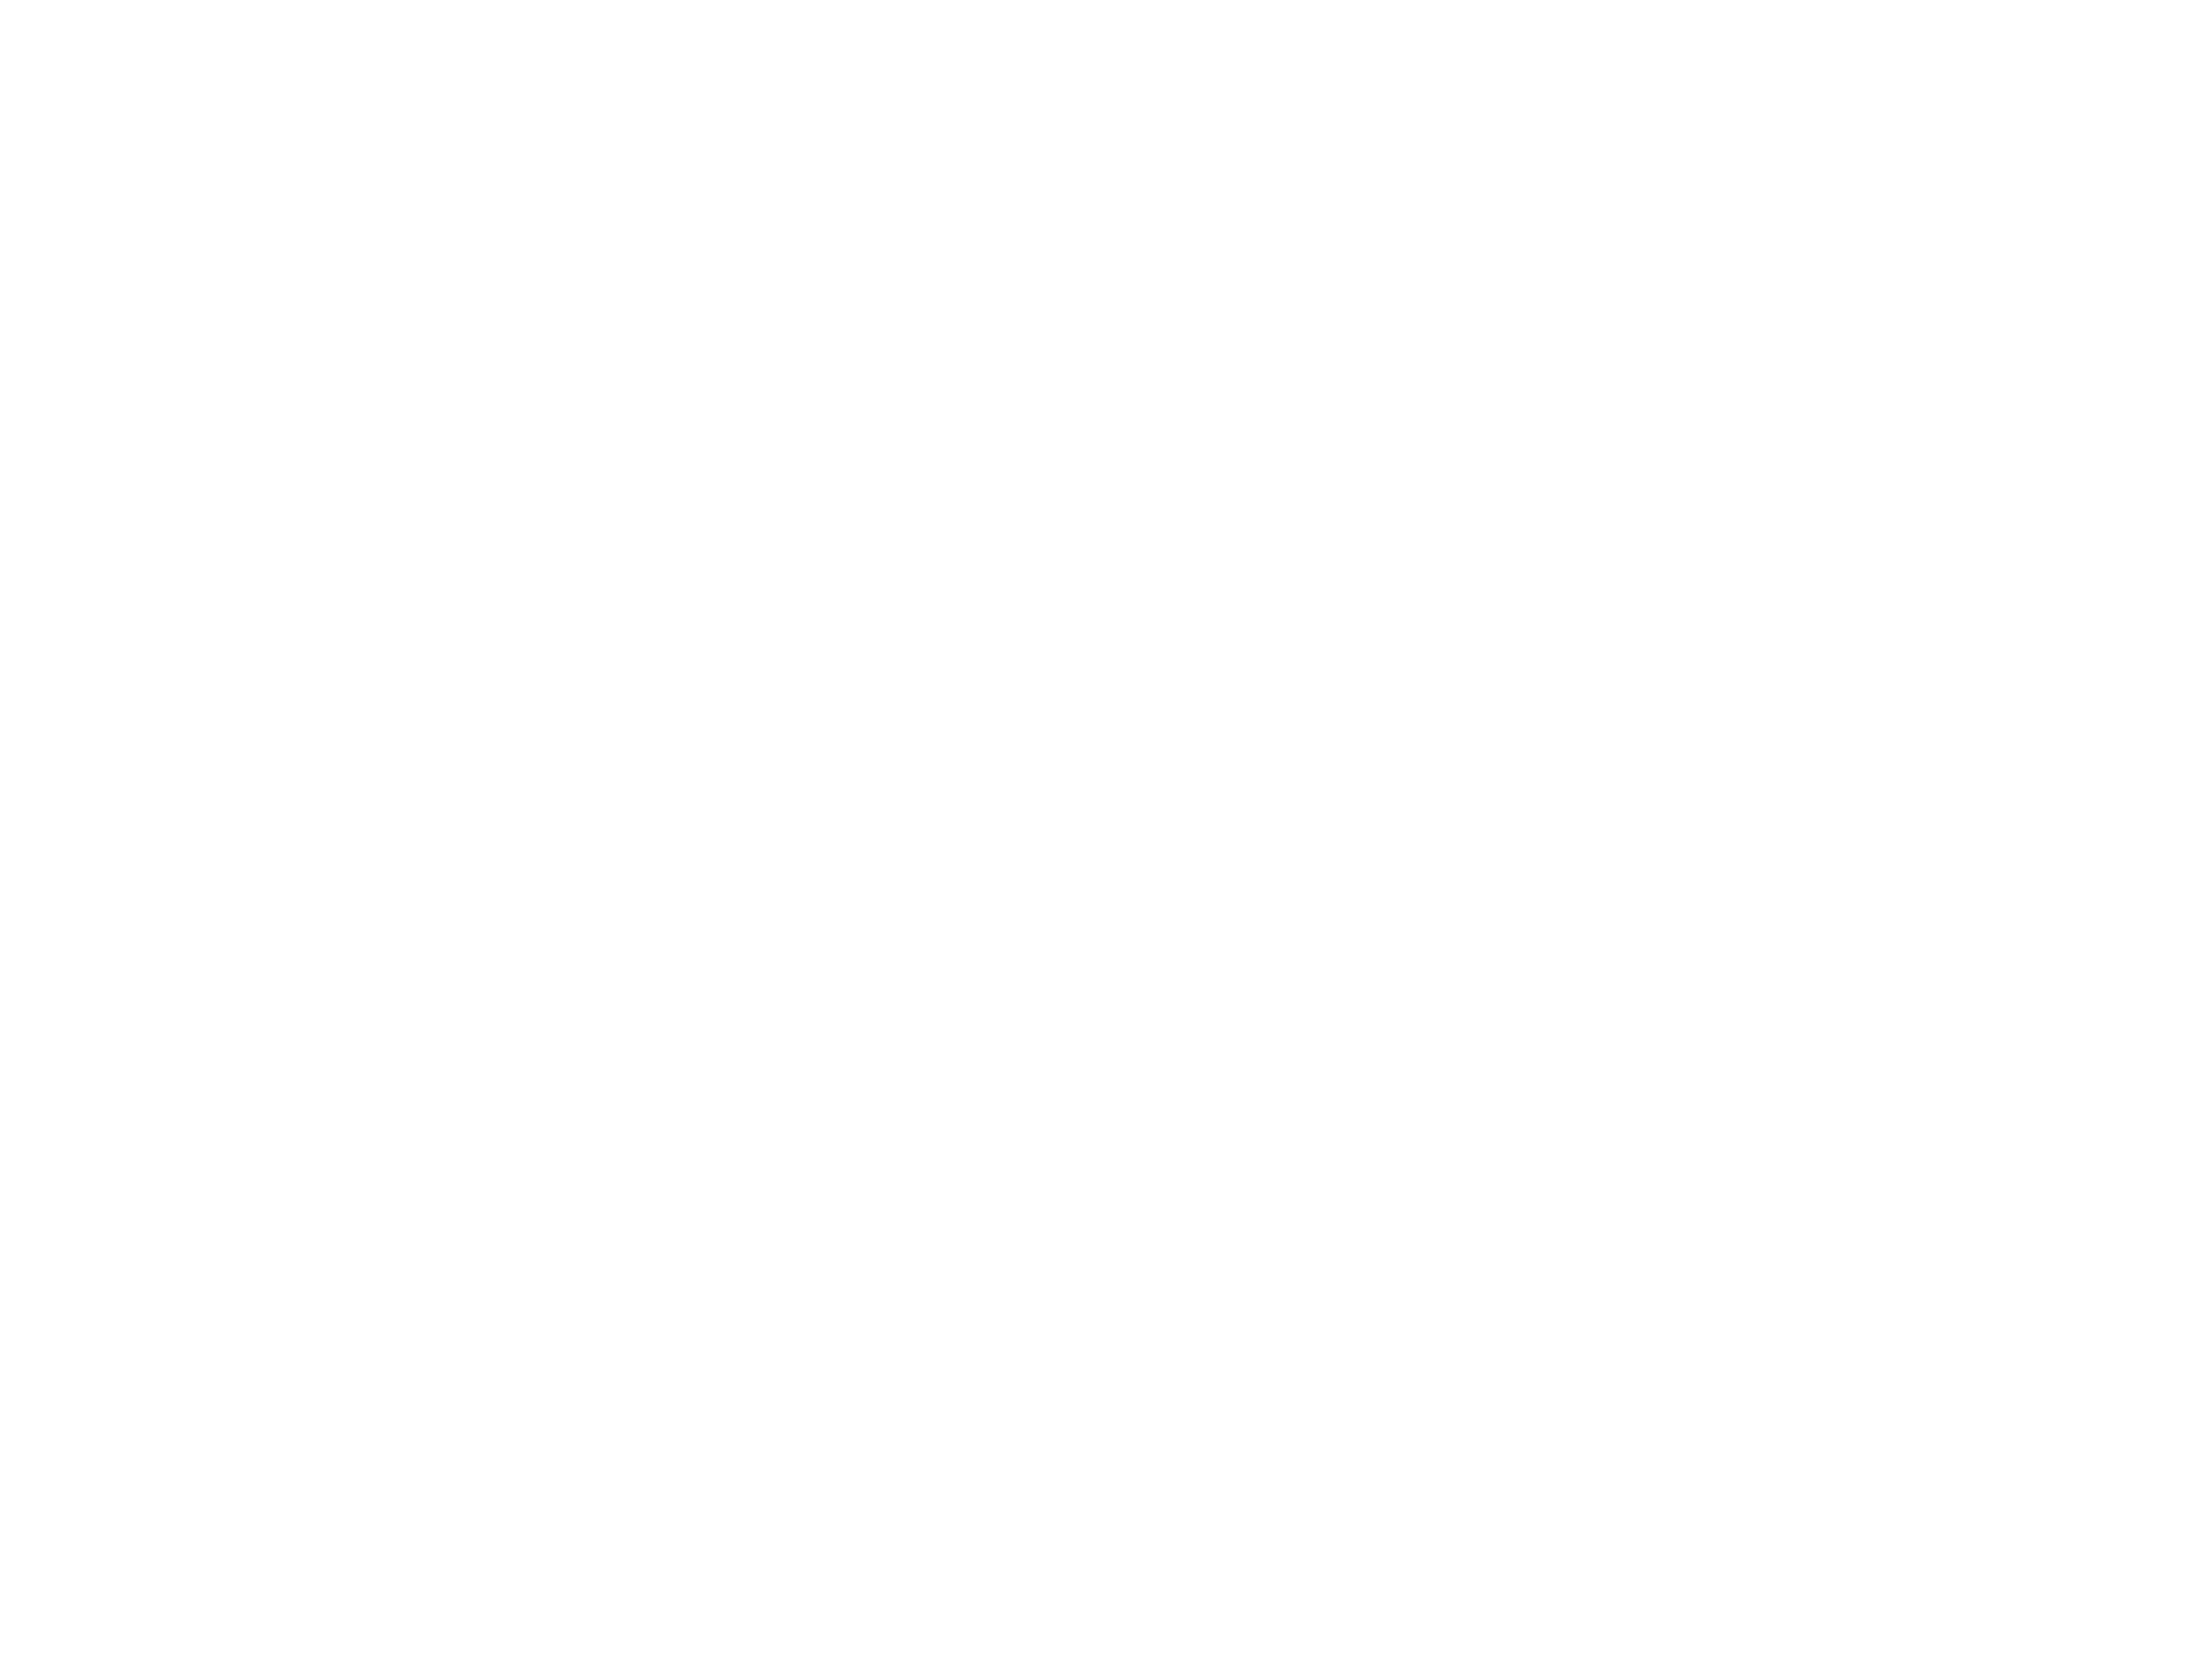 Magnolia Home accessories and Magnolia Home Furniture